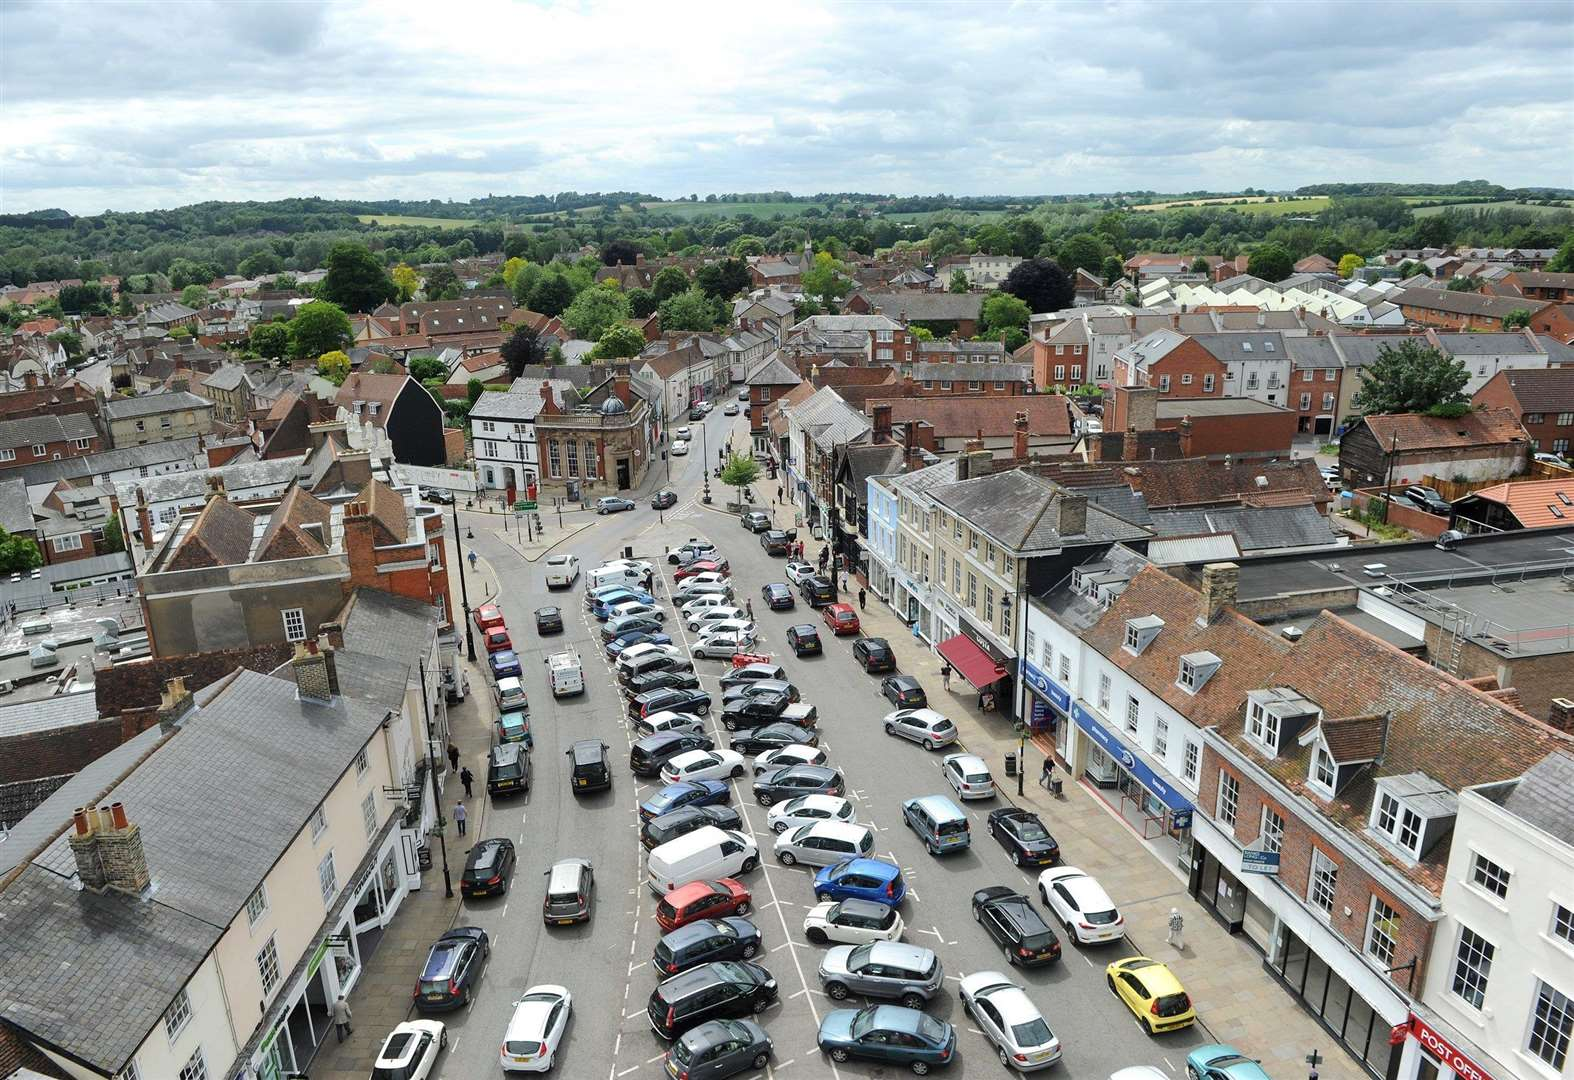 Major projects in Sudbury and Hadleigh could receive almost £1m under new scheme